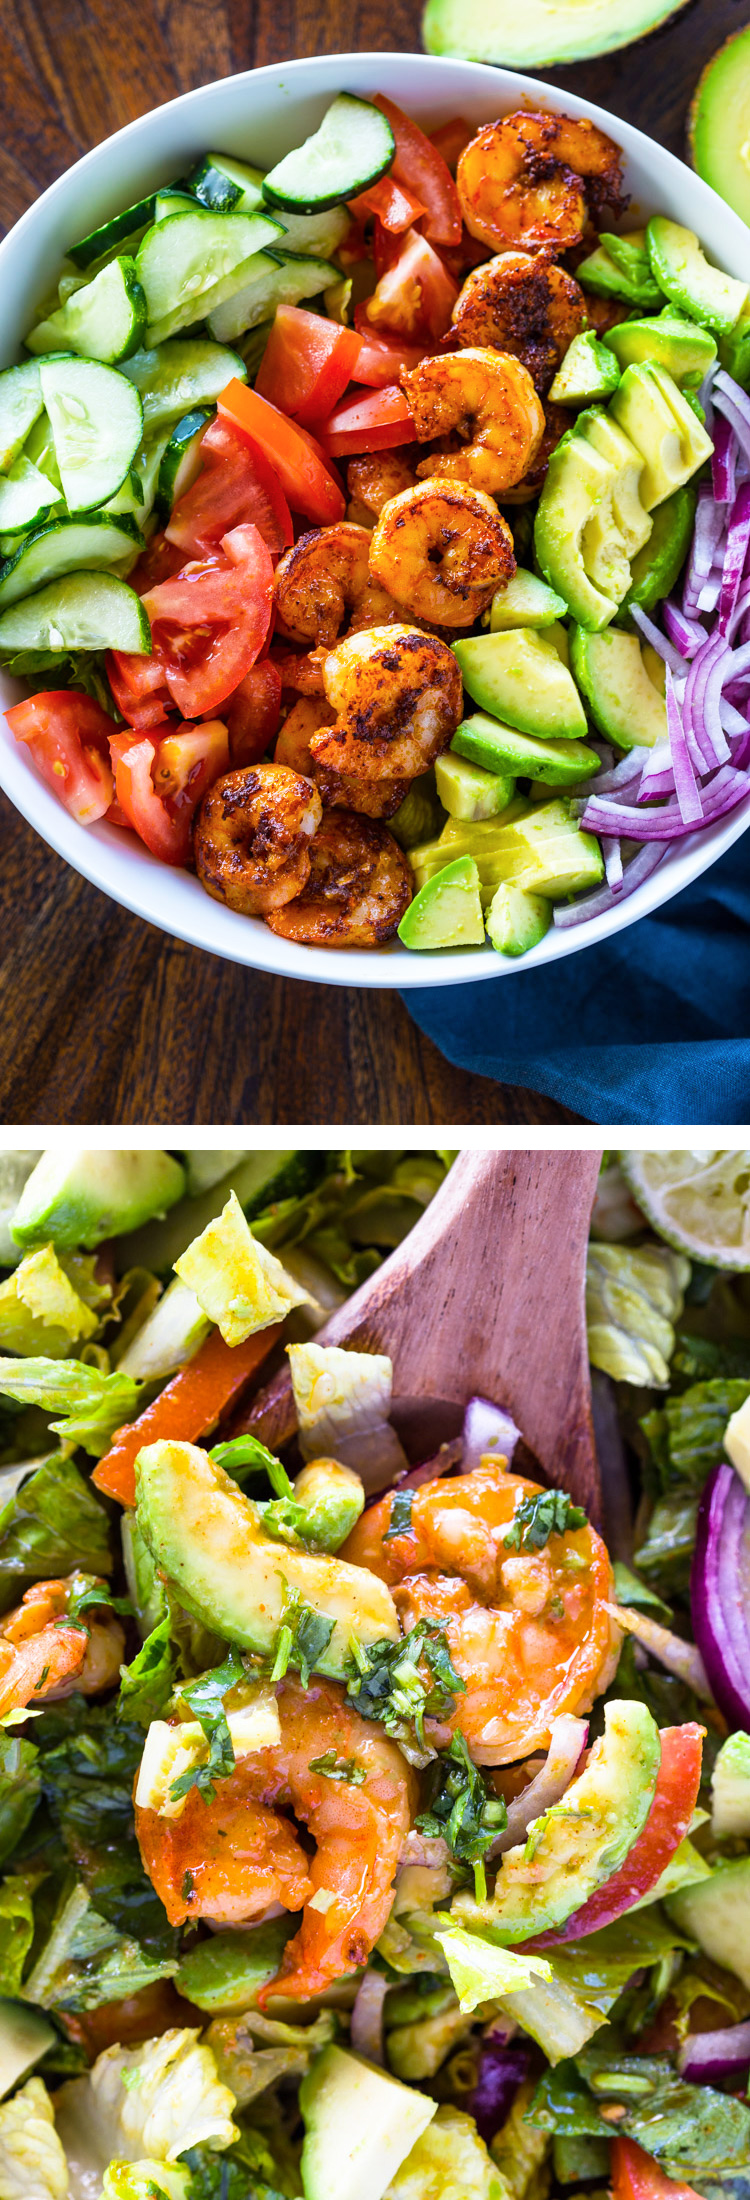 Skinny Shrimp & Avocado Salad with Cilantro Lime Dressing